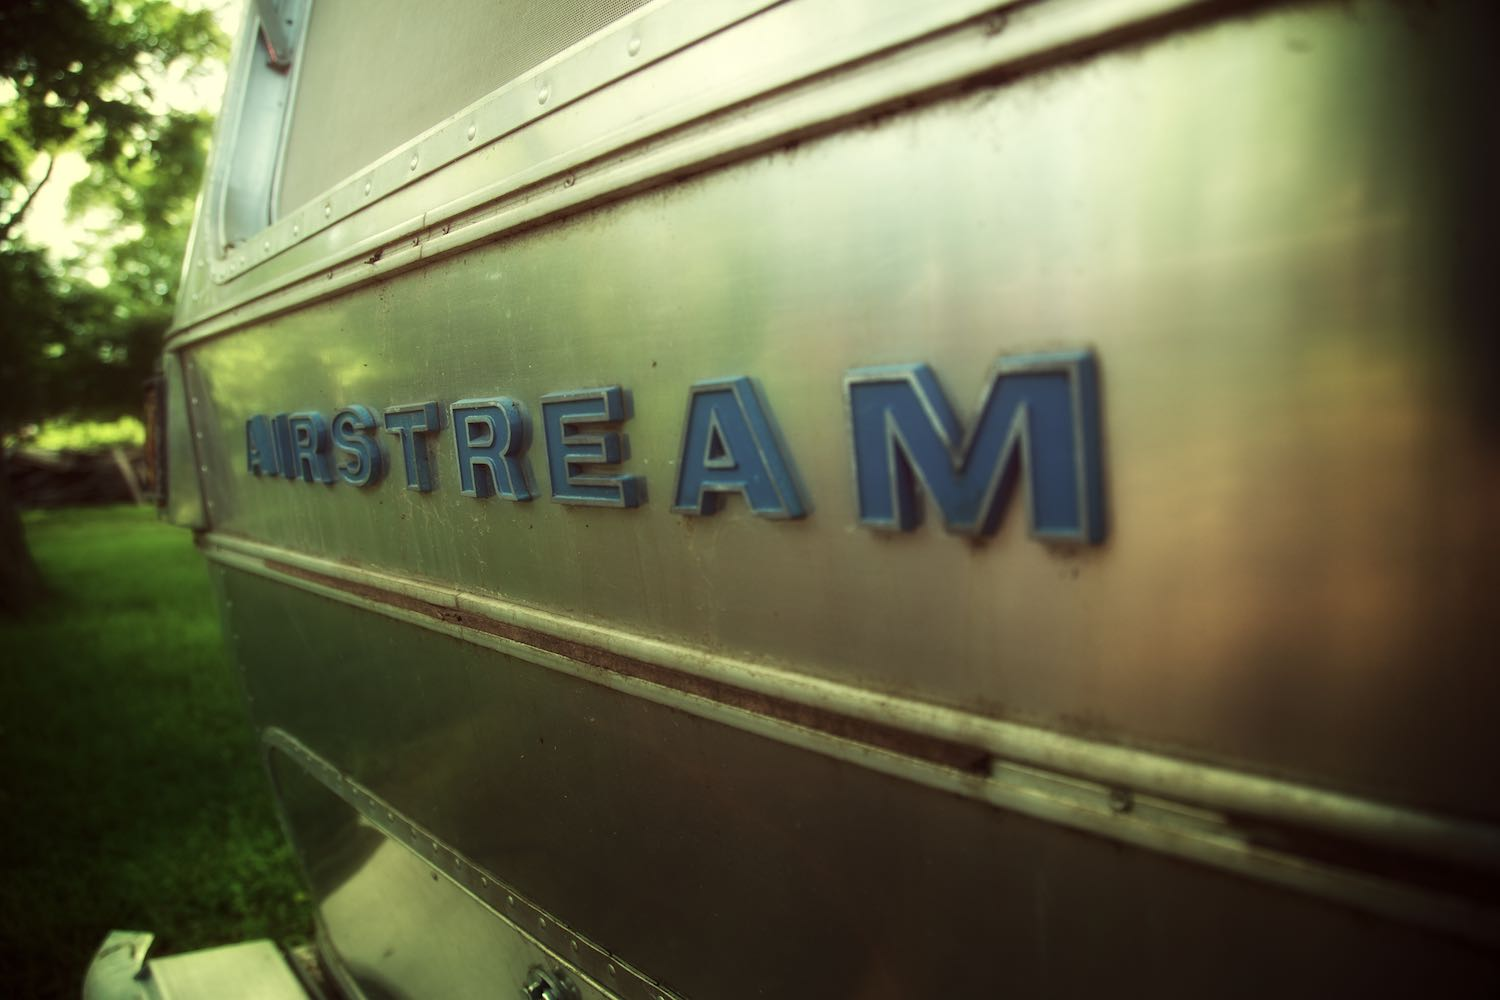 A rear view of our Airstream lettering emblem.